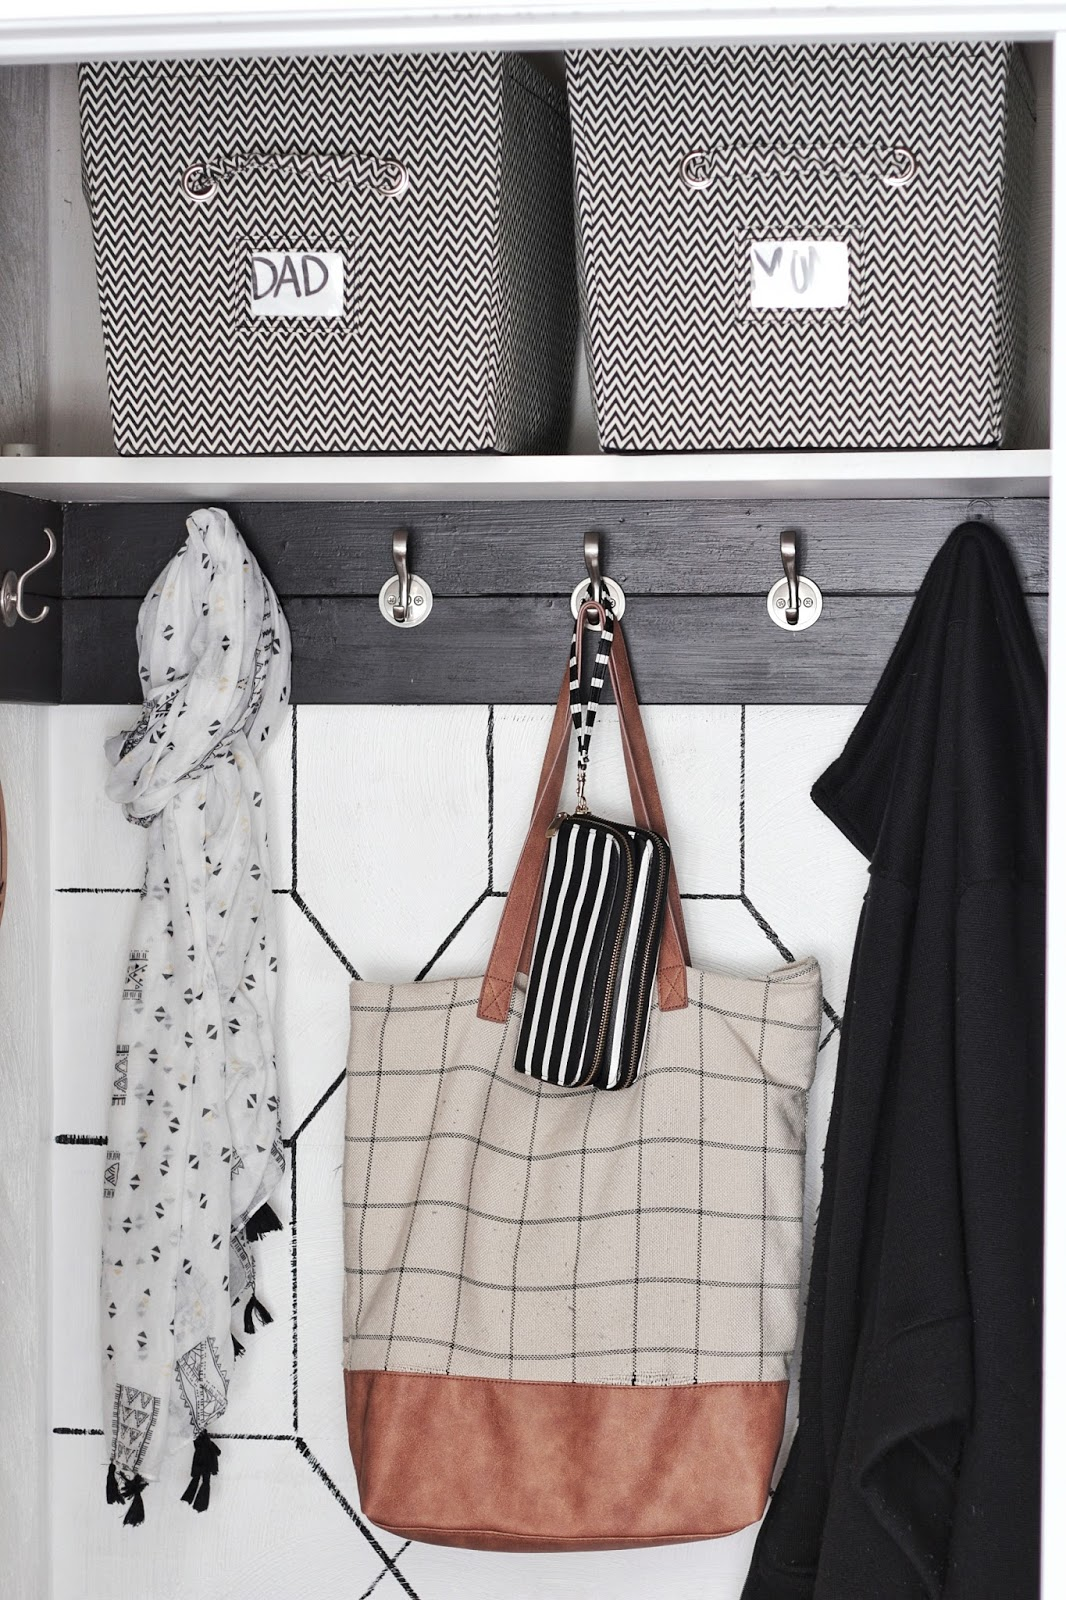 https://www.fwmadebycarli.com/2017/01/organization-entryway-coat-closet-and.html